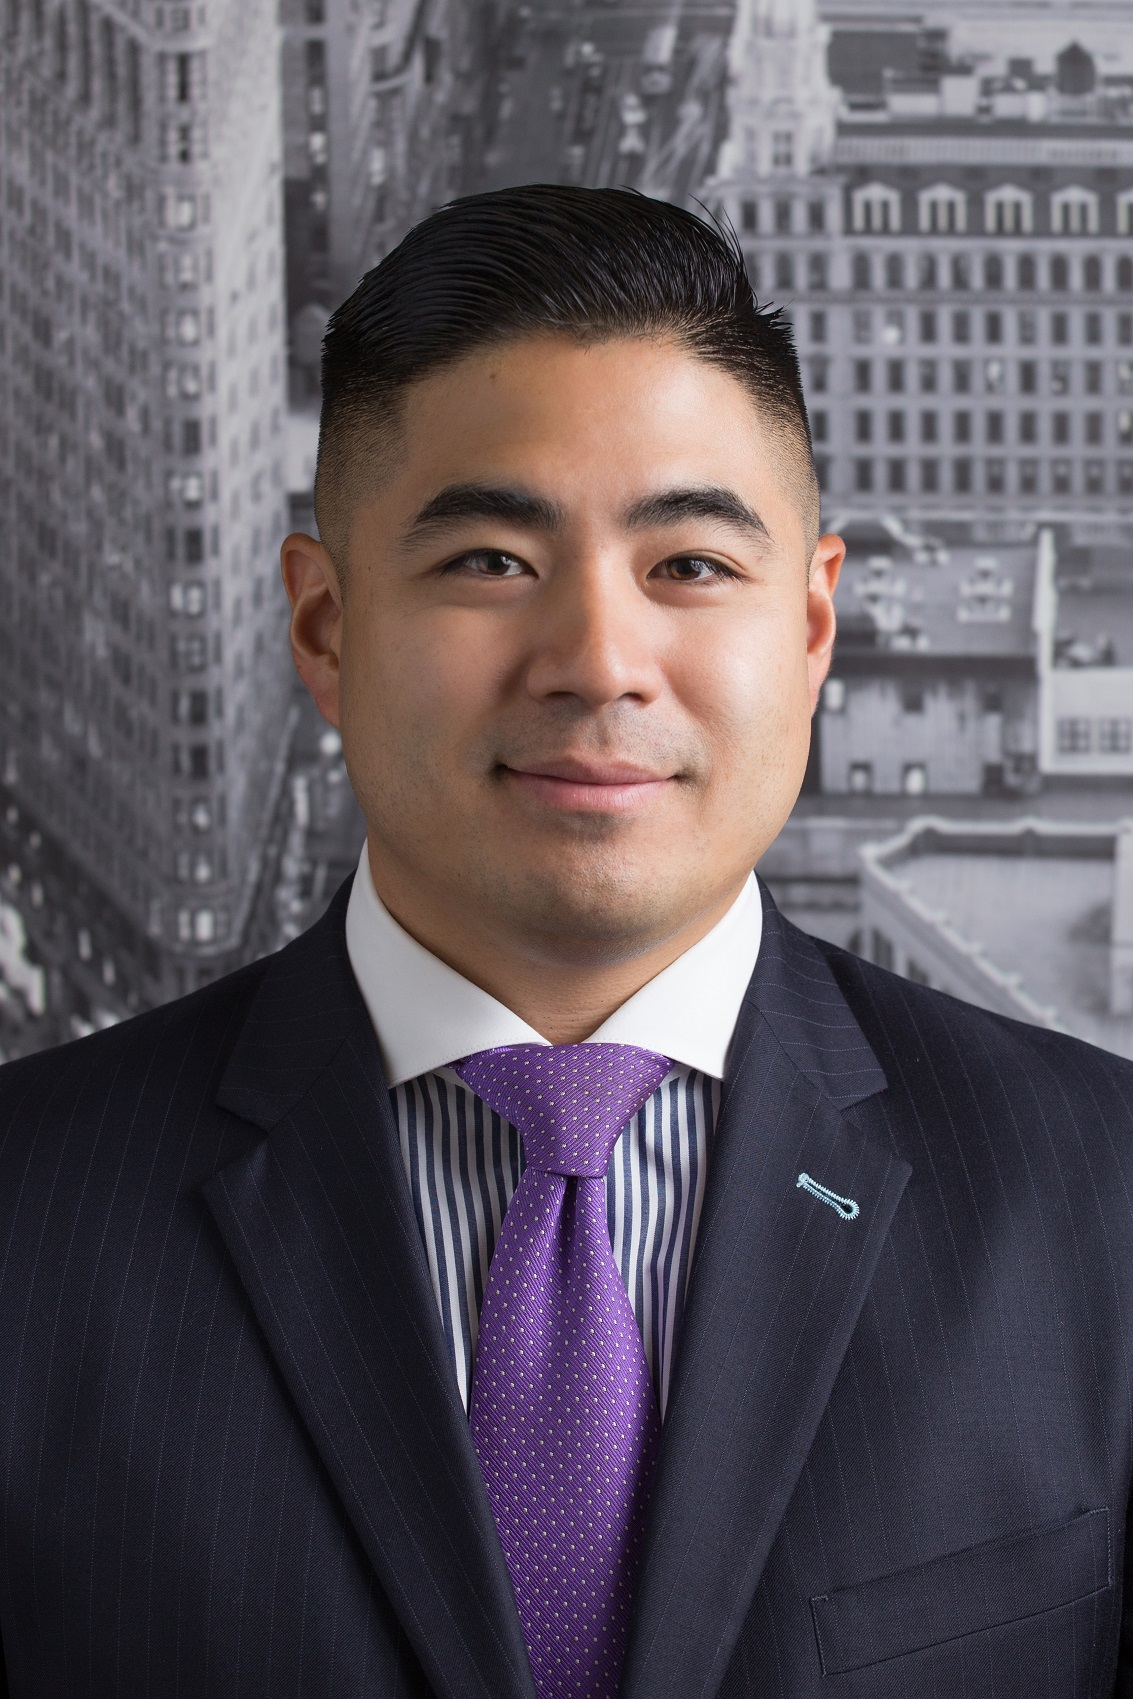 Christopher N. Okada  President 212-244-4240 Ext. 305  cno@okadaco.com    Christopher N. Okada is the Founder and President of Okada & Company. Over the past 15 years of his New York real estate career, he was able to consummate over $1B in sales, represent several Fortune 500 companies, and amass a portfolio of office, multi-family, & retail properties.